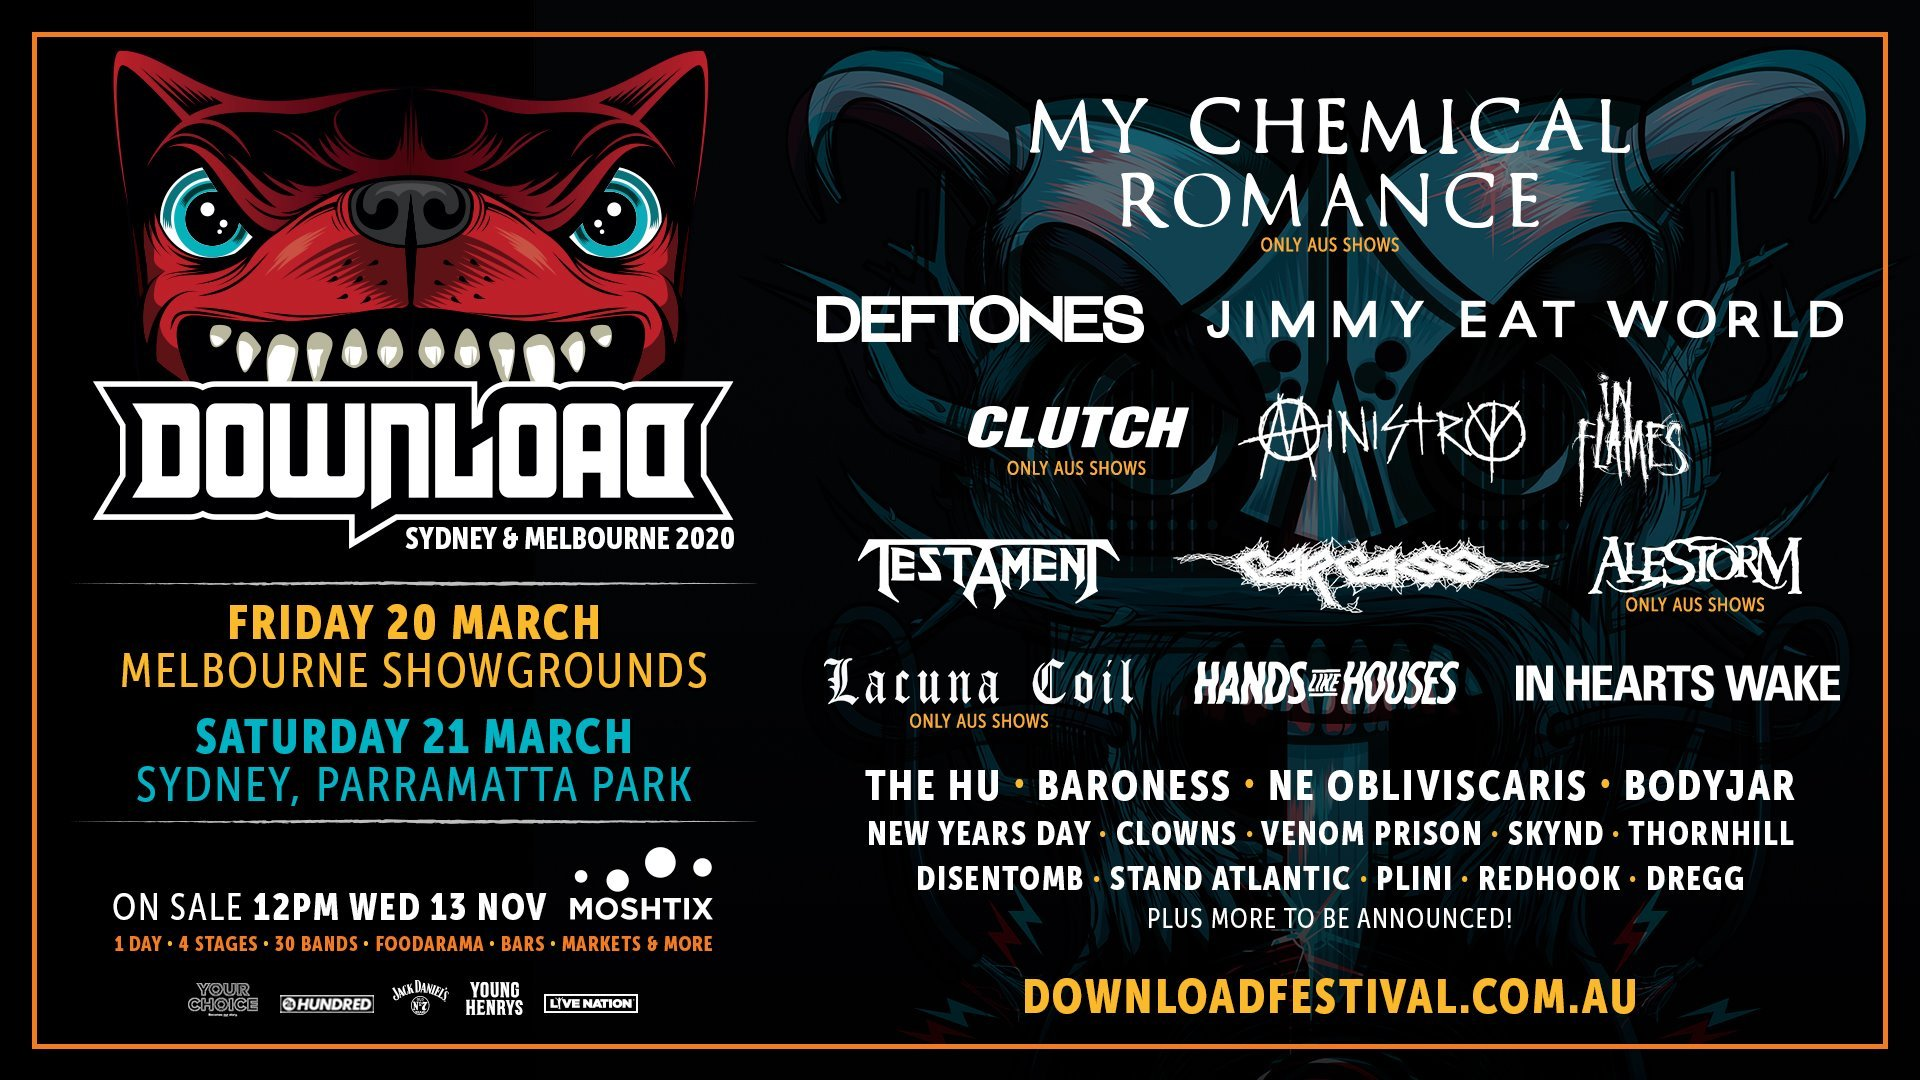 Download Australia 2020 Headliners Are My Chemical Romance